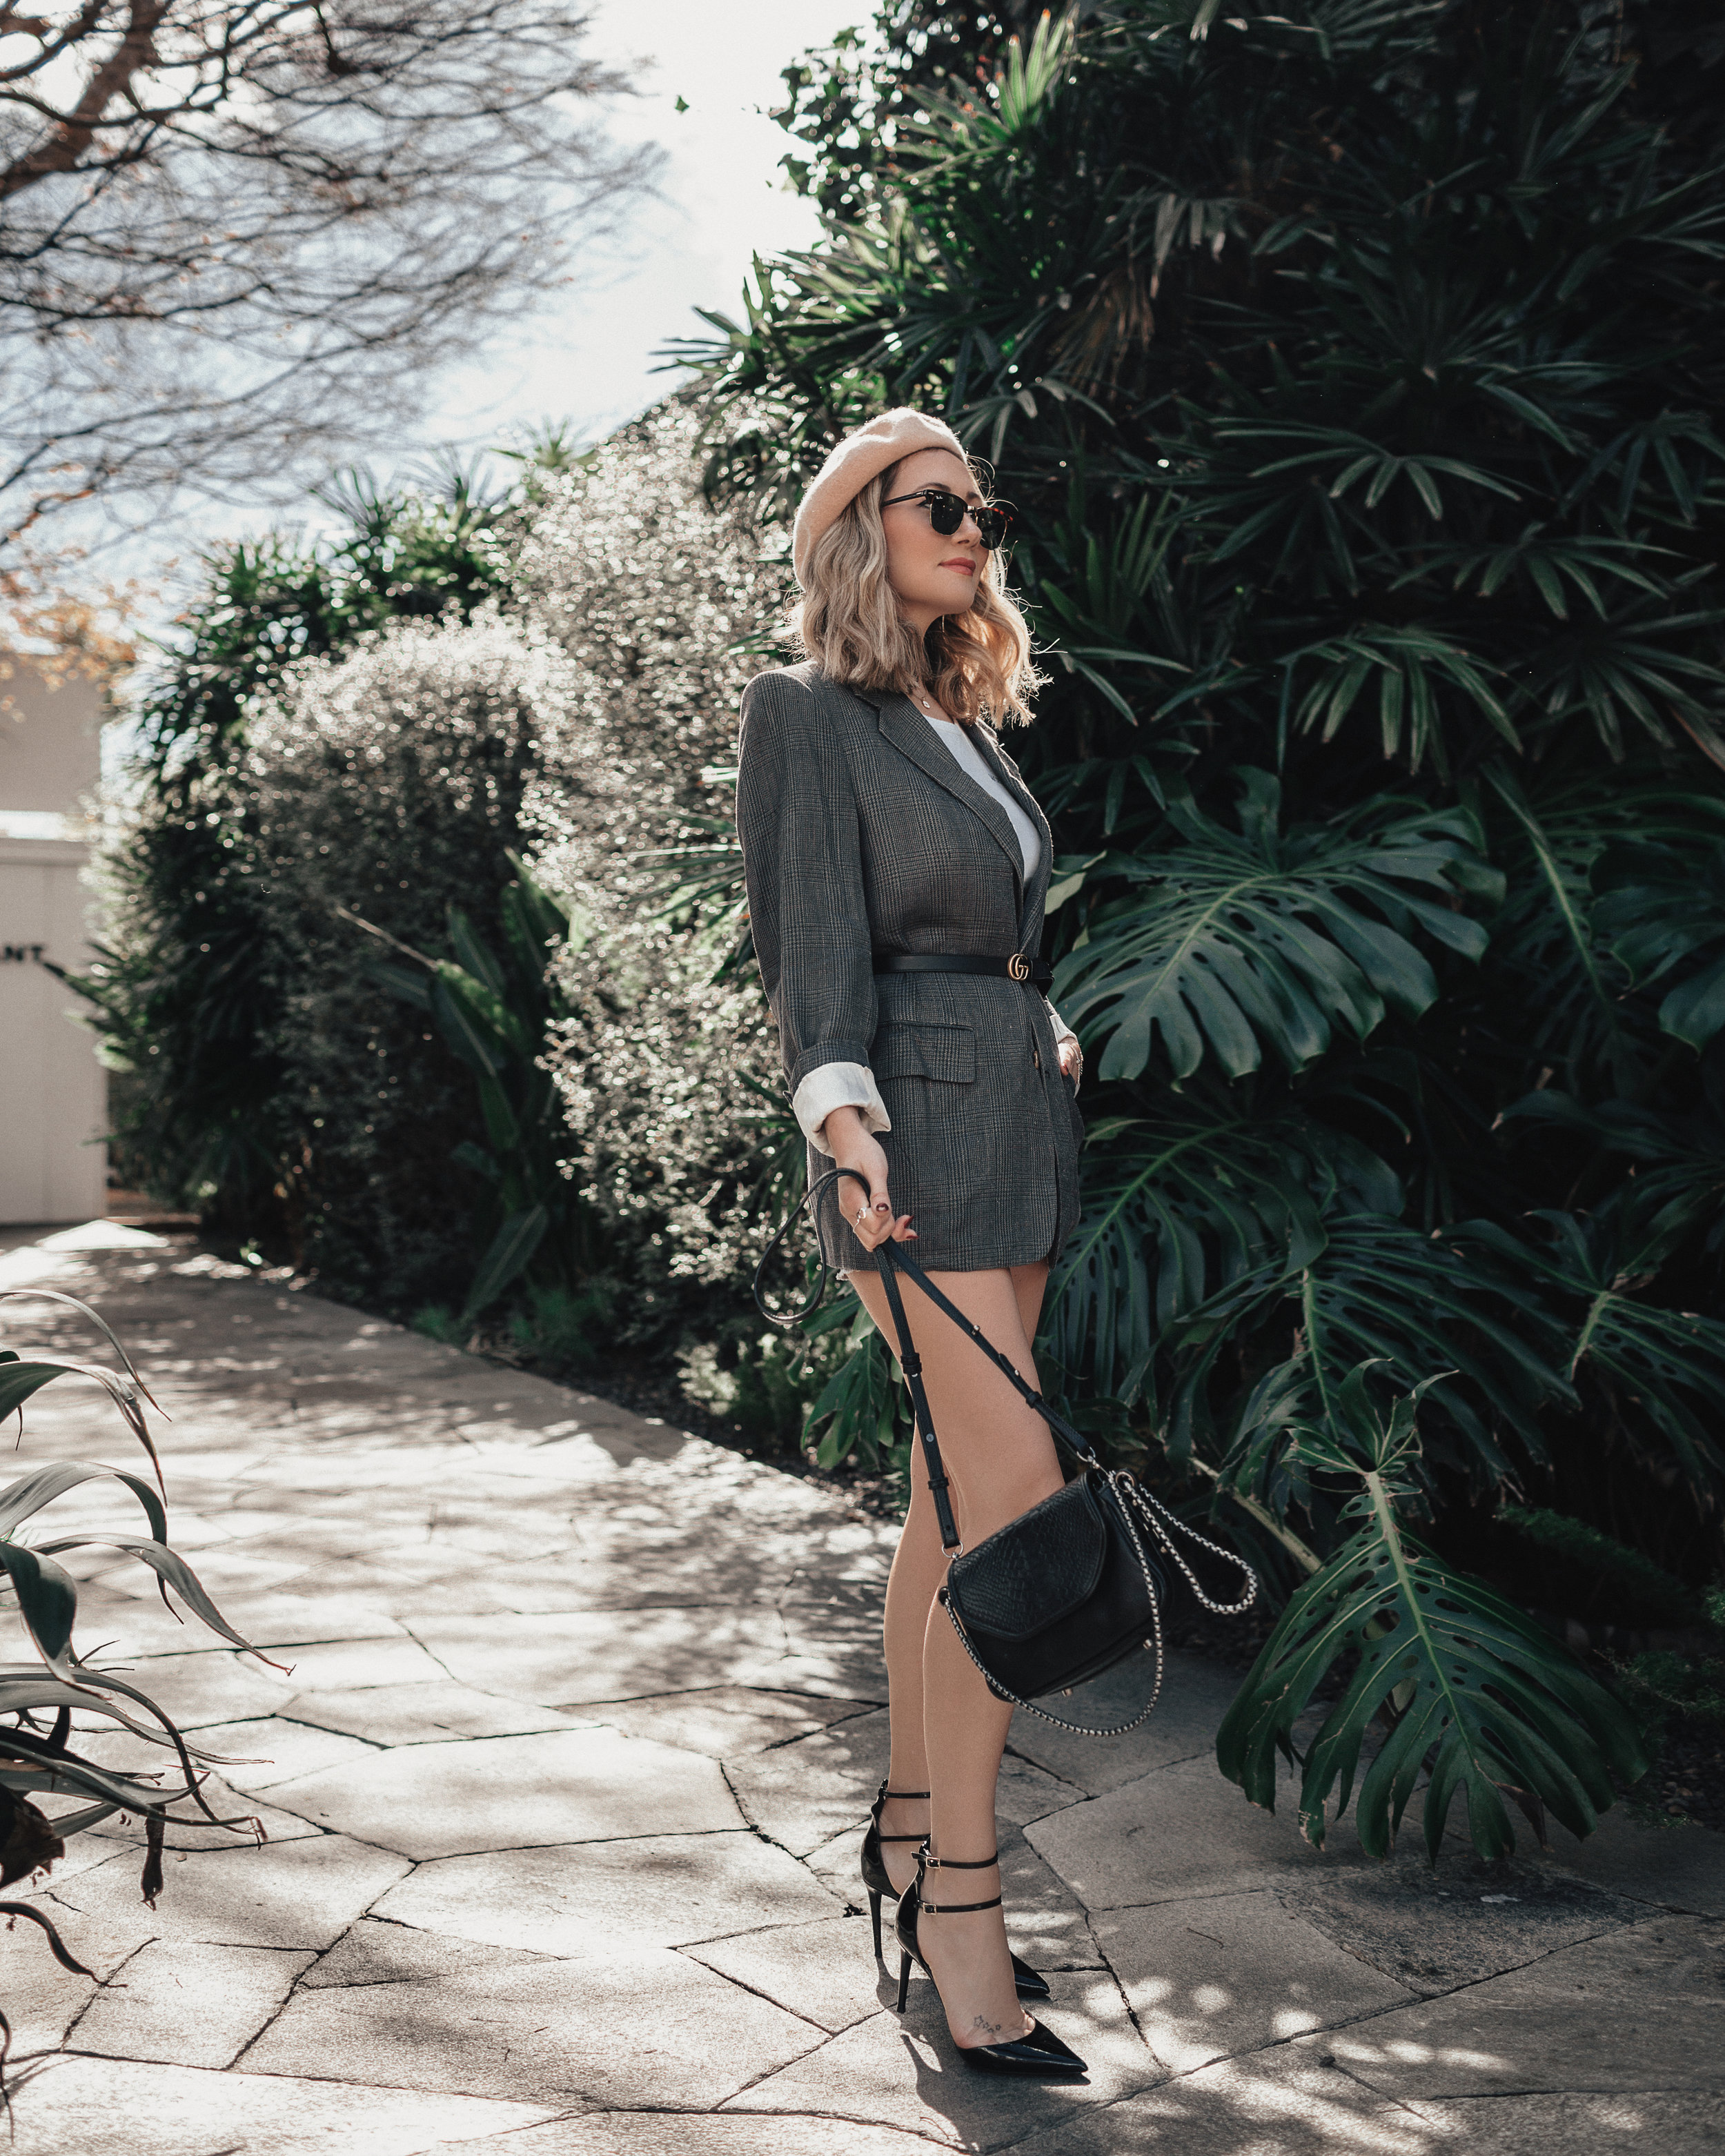 Street style // Los Angeles fashion blog // Melrose Place // women's style ideas // spring style 2018 // The Style Saucee